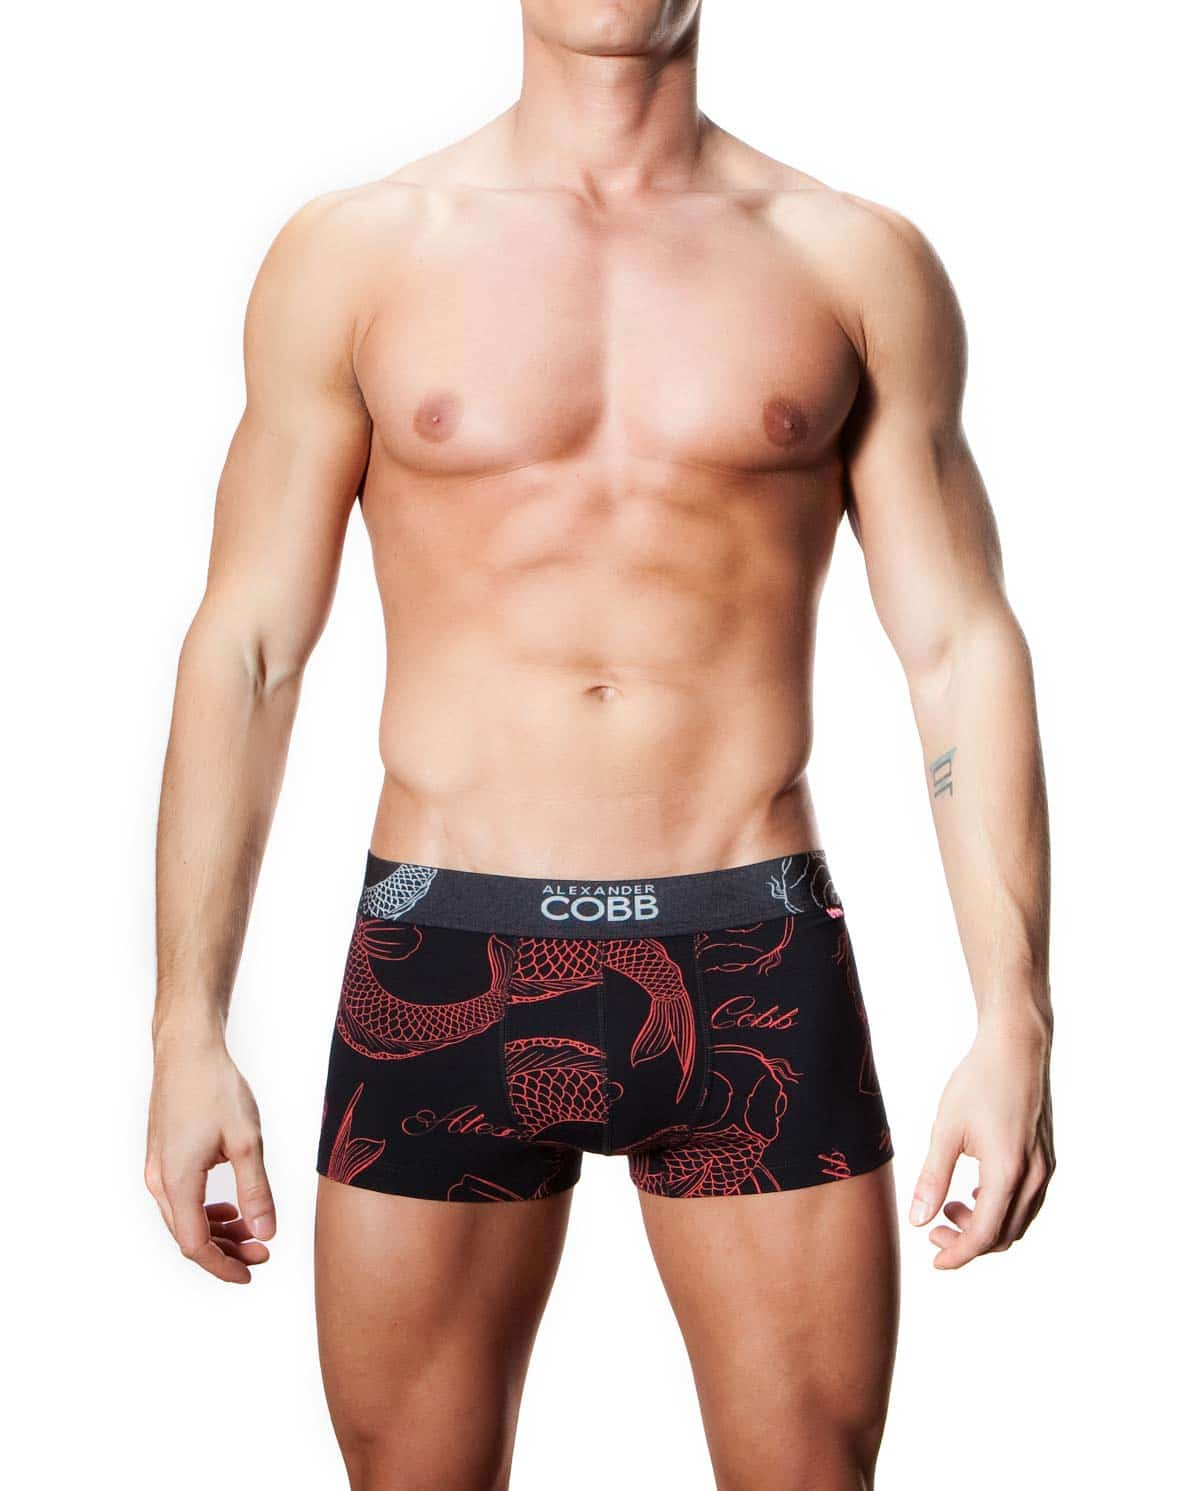 Male model wearing Alexander COBB Koi Men's Boxer Brief